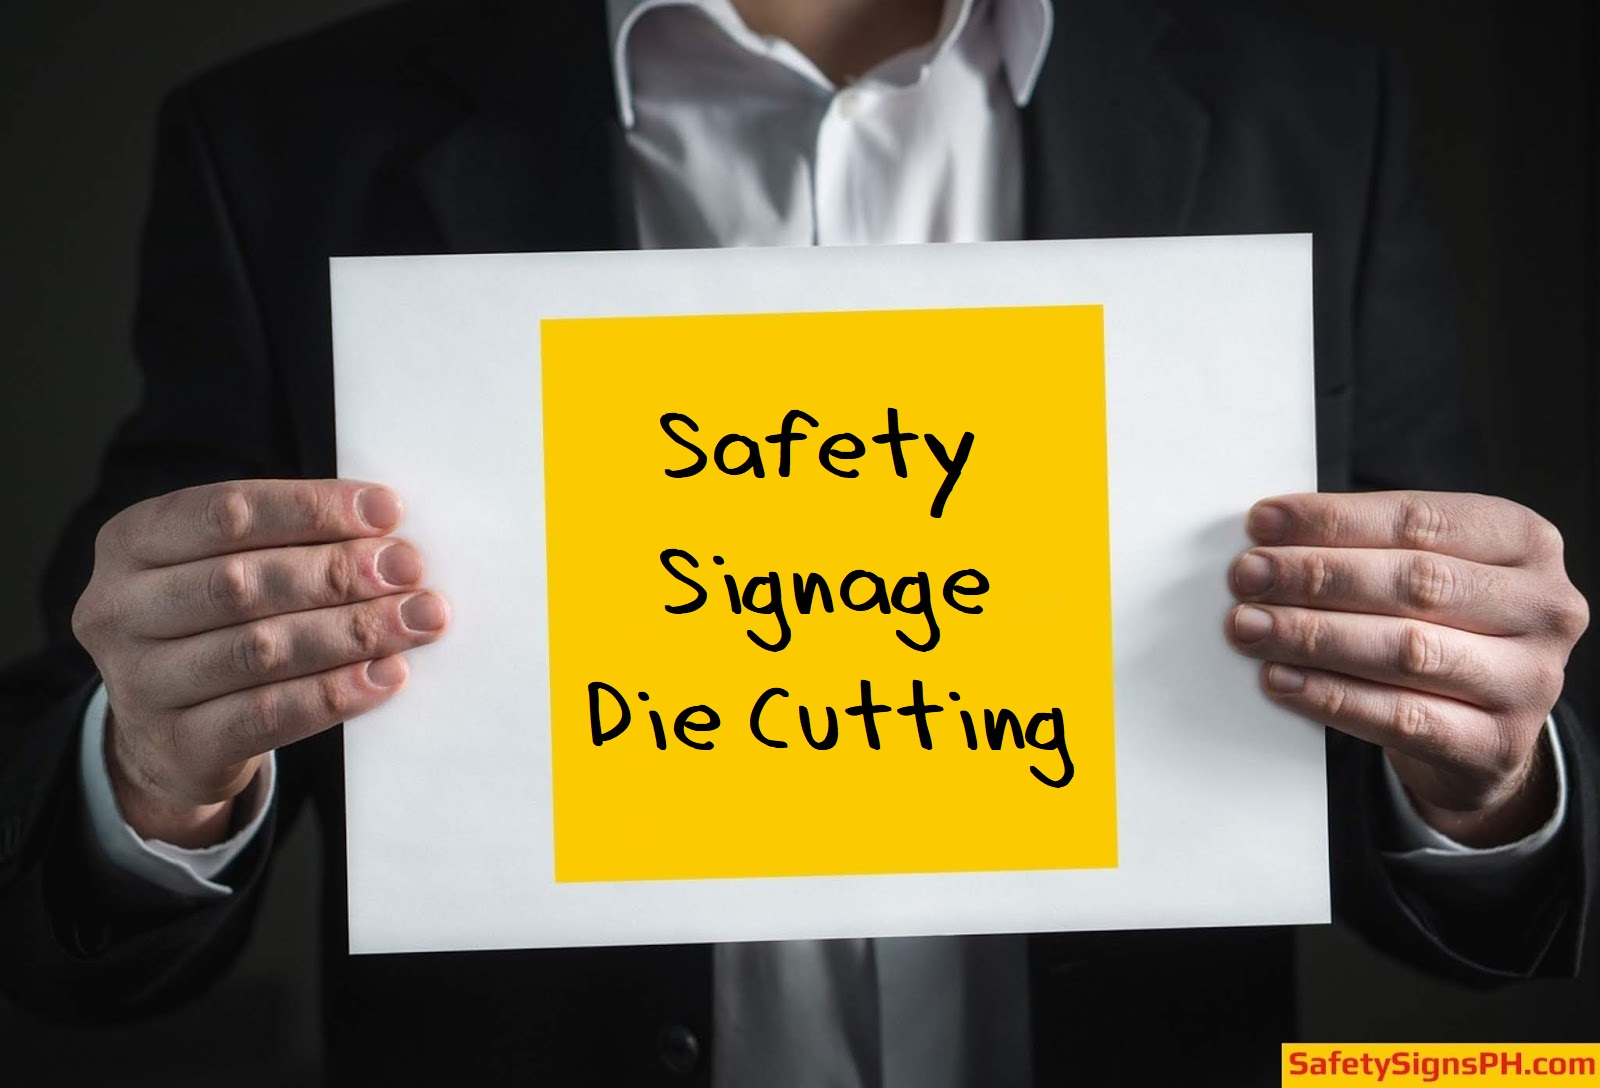 Safety Signage Die Cutting Services Philippines